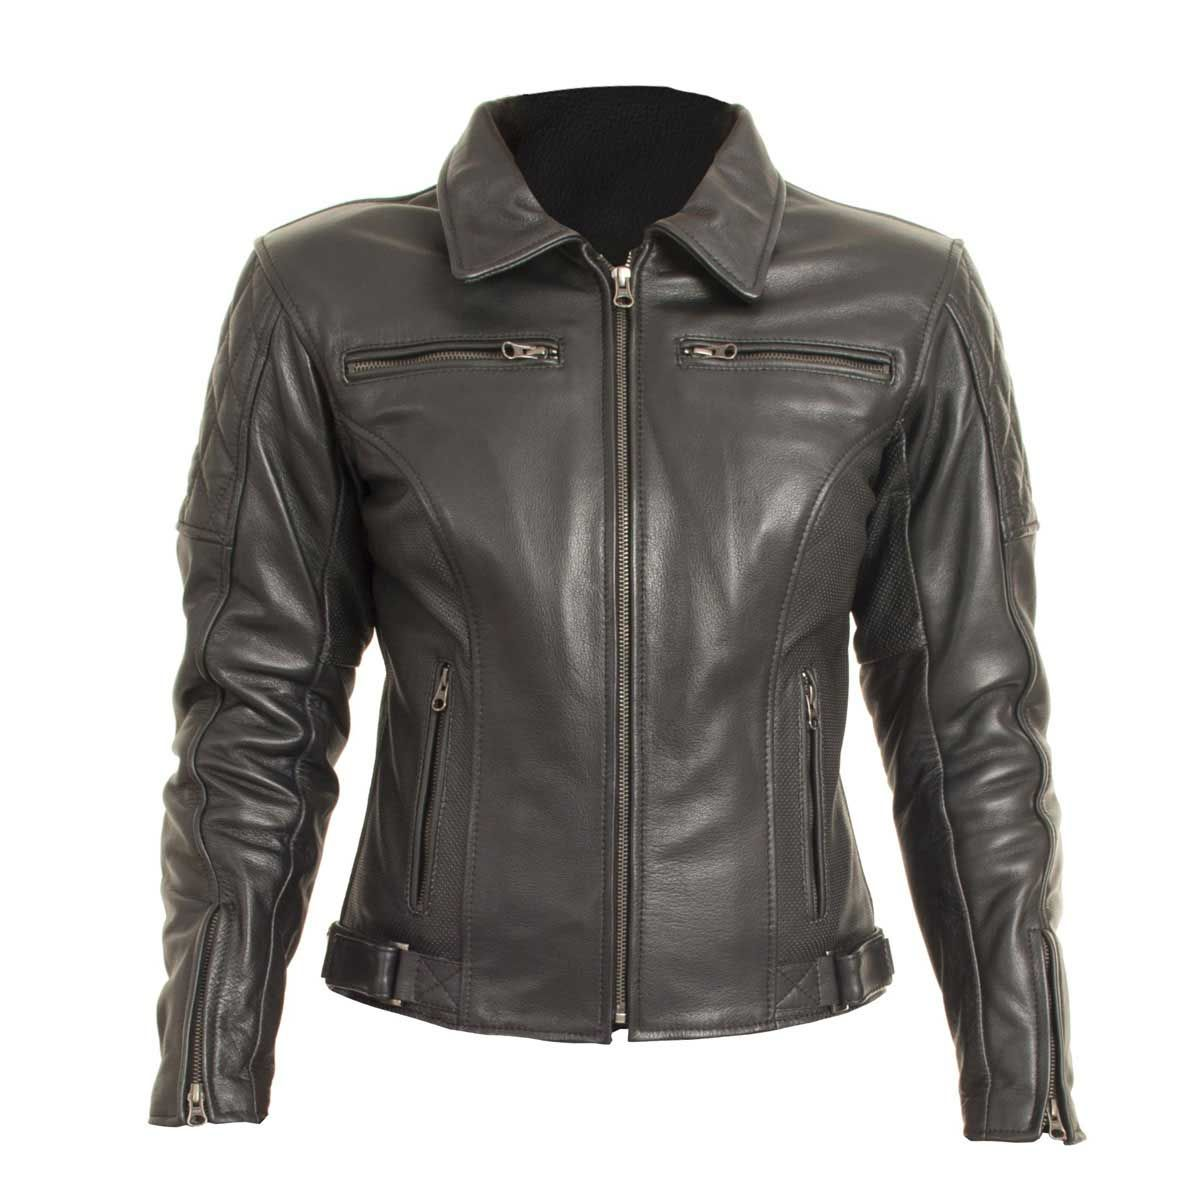 RST Cruz Ladies Leather Motorcycle Jacket Black